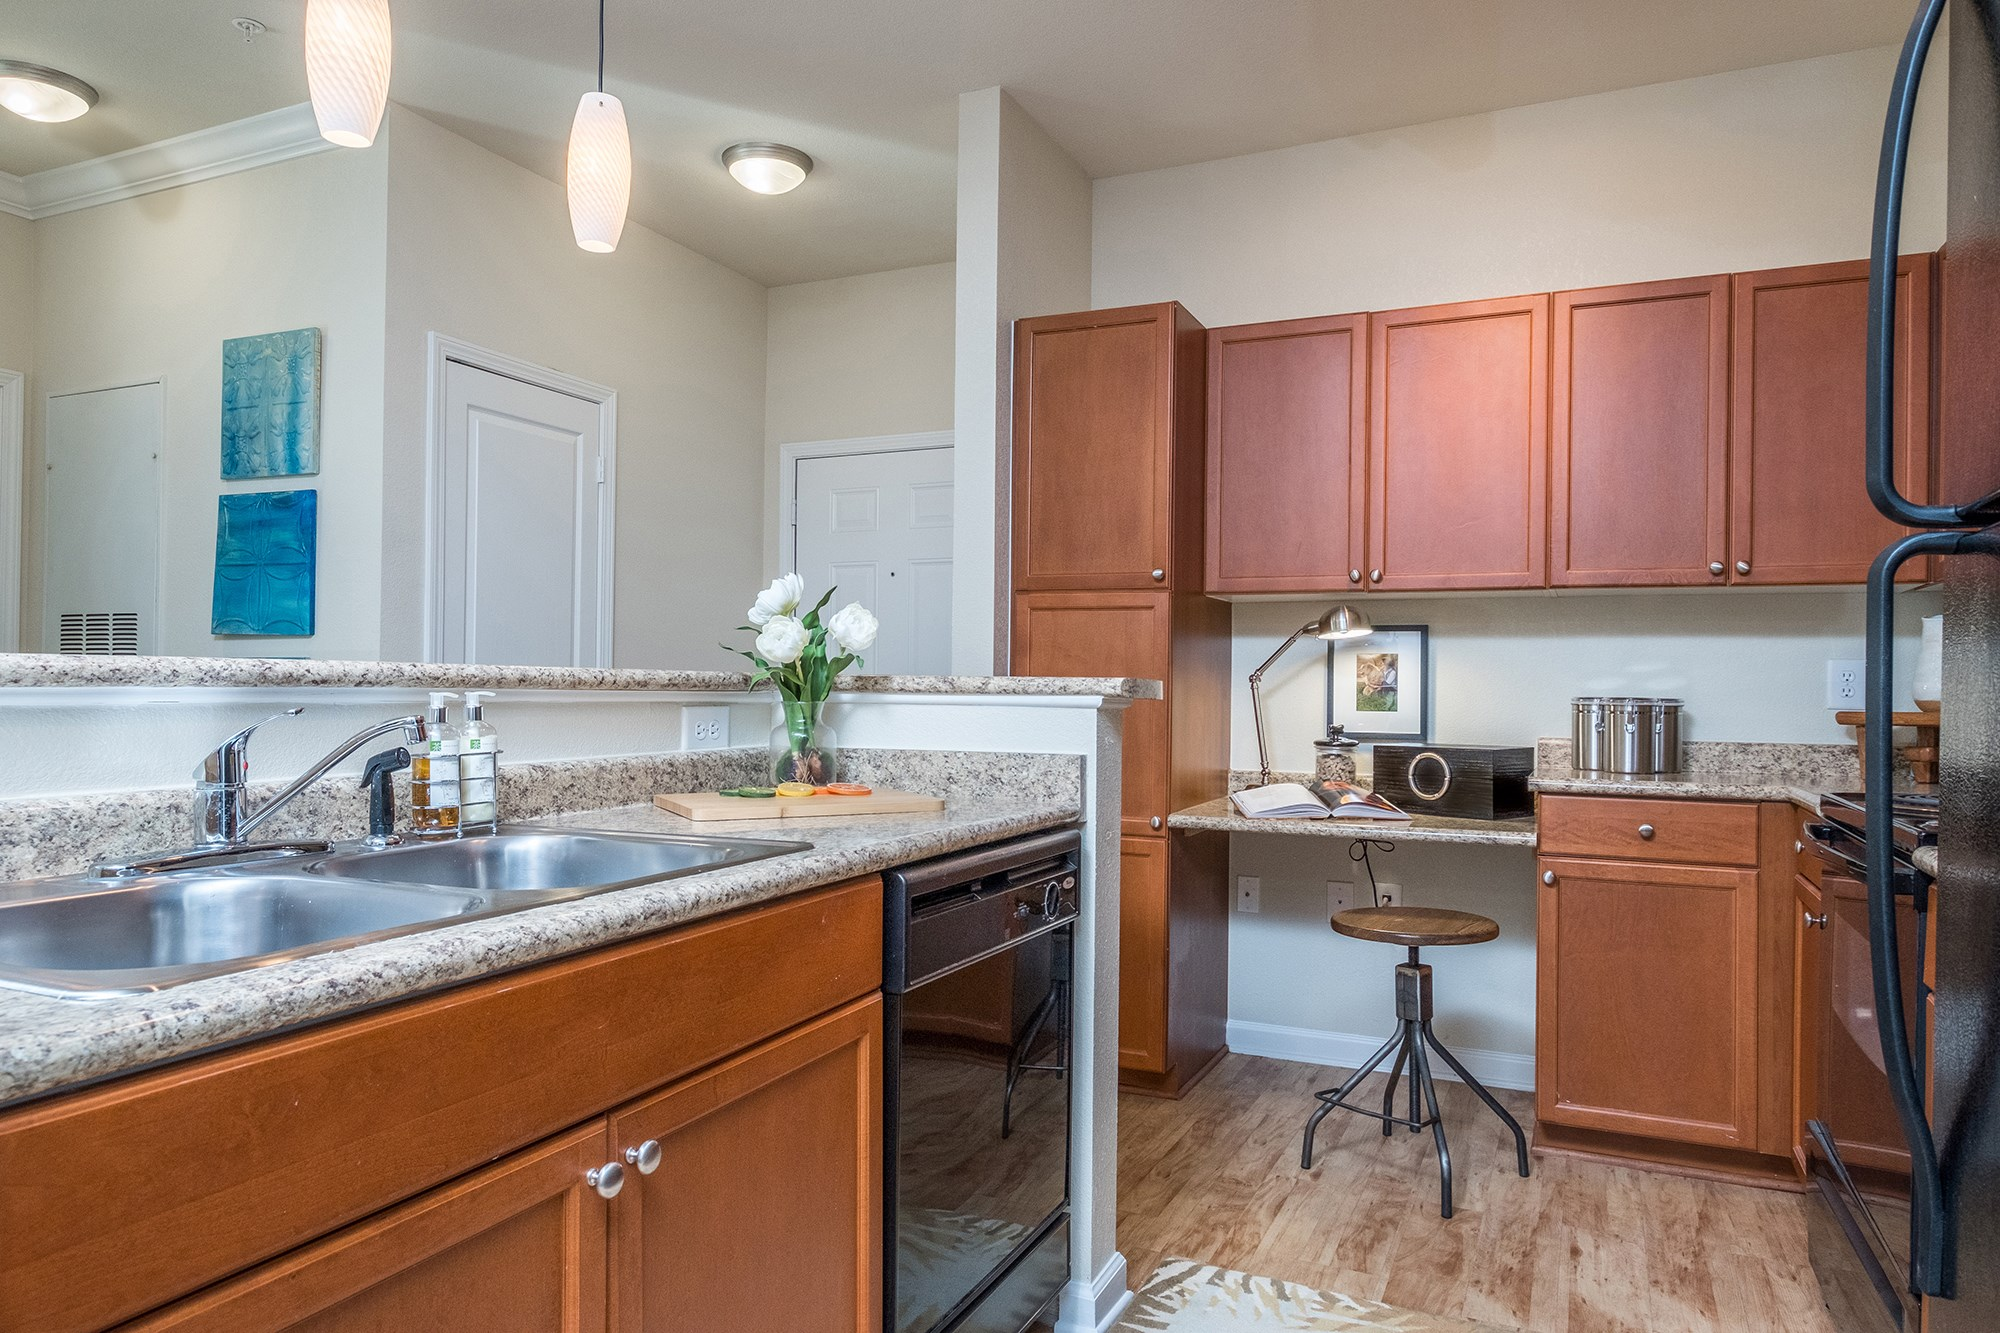 Kitchen at View at Legacy Oaks Apartments in Knightdale, NC